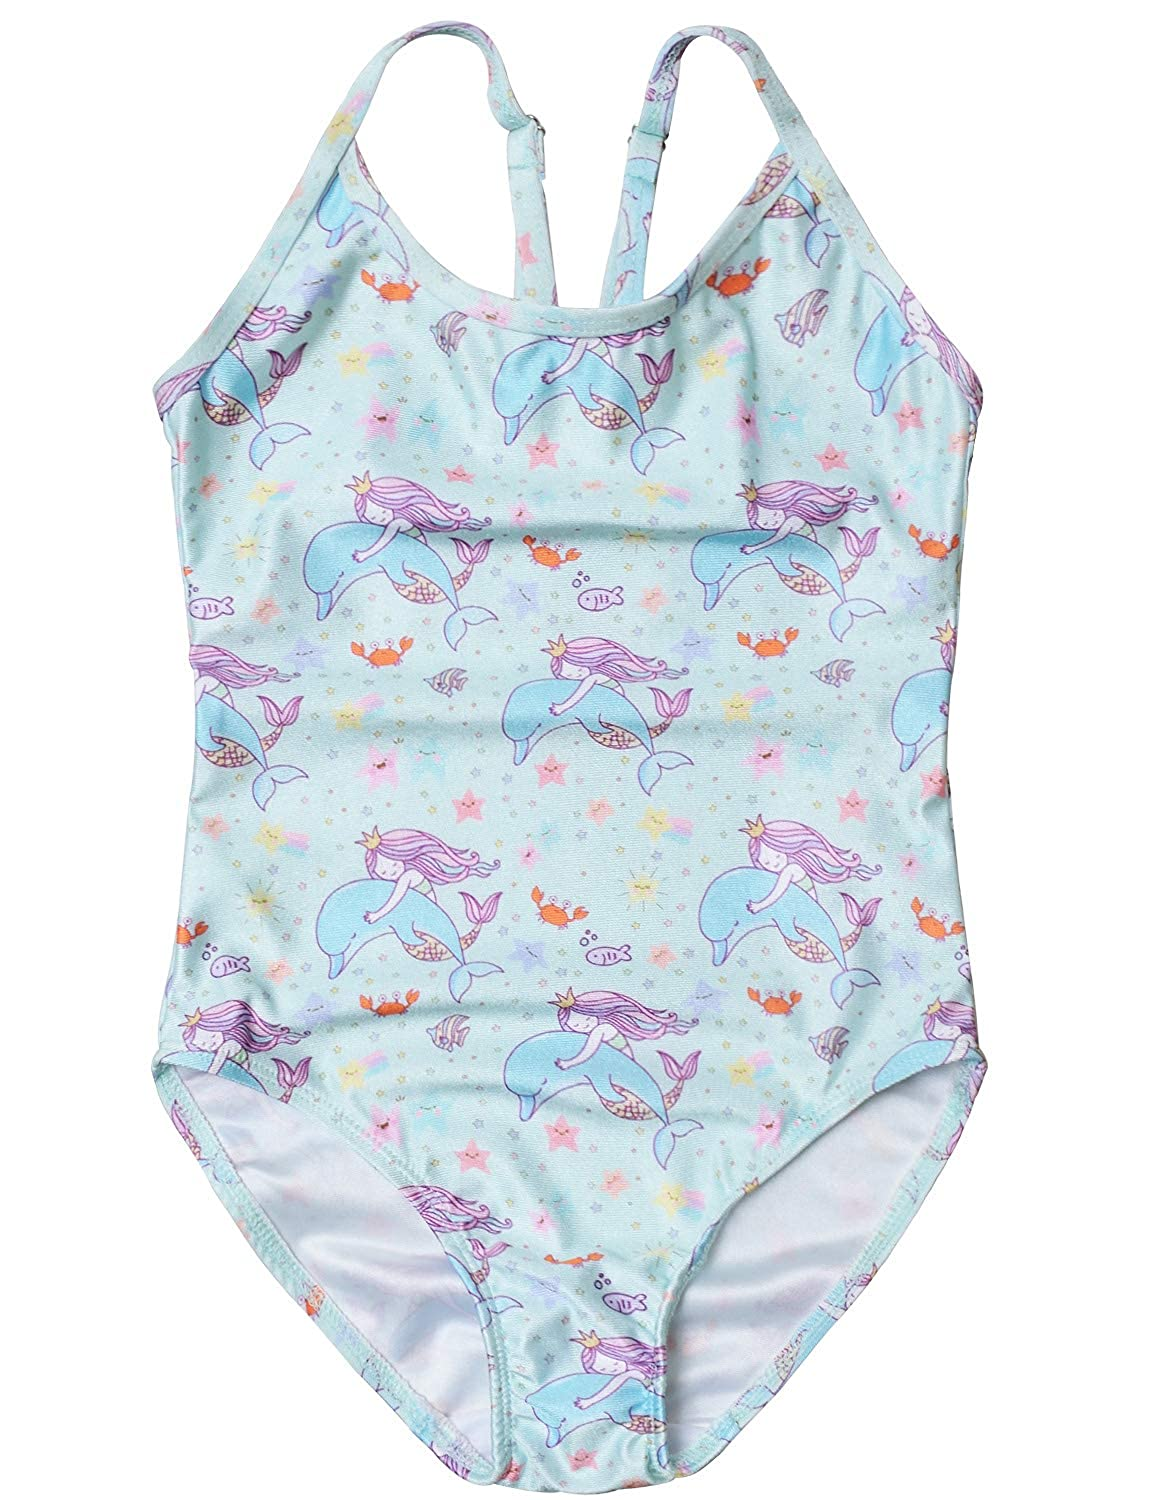 Girls Swimsuits Unicorn Mermaid Bathing Suits for Kids One Piece Beach Clothes